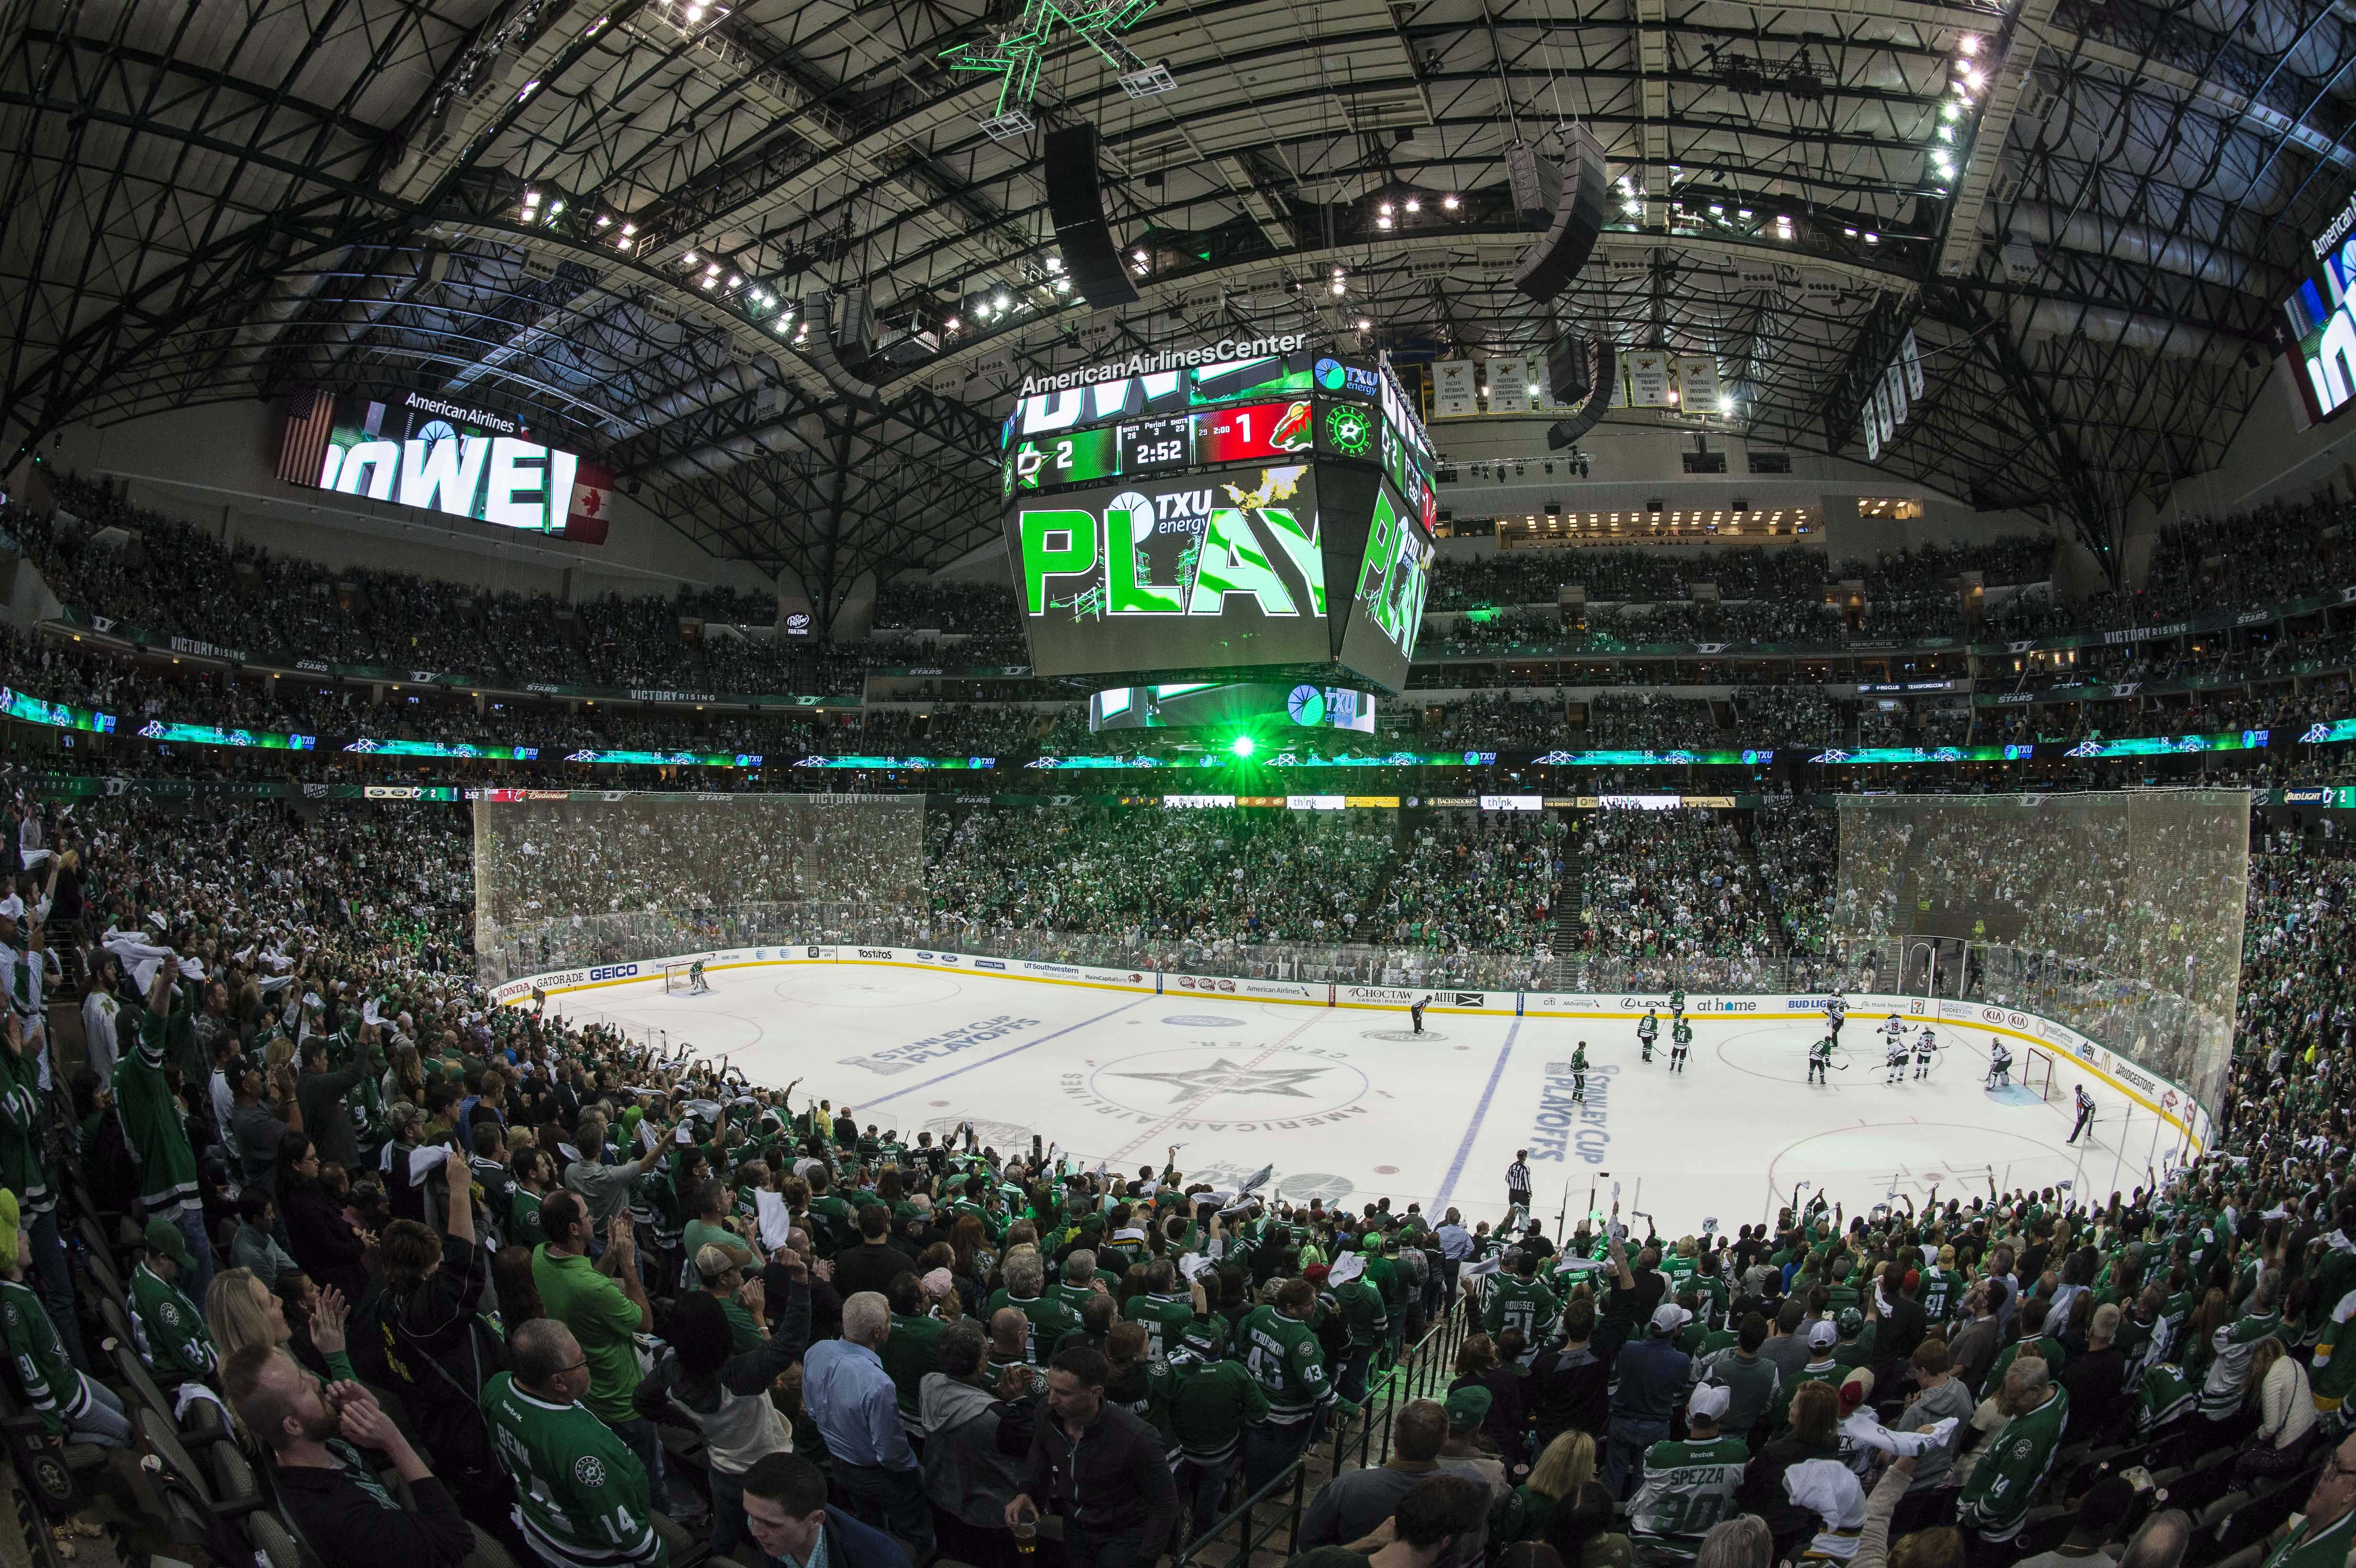 9255548-nhl-stanley-cup-playoffs-minnesota-wild-at-dallas-stars